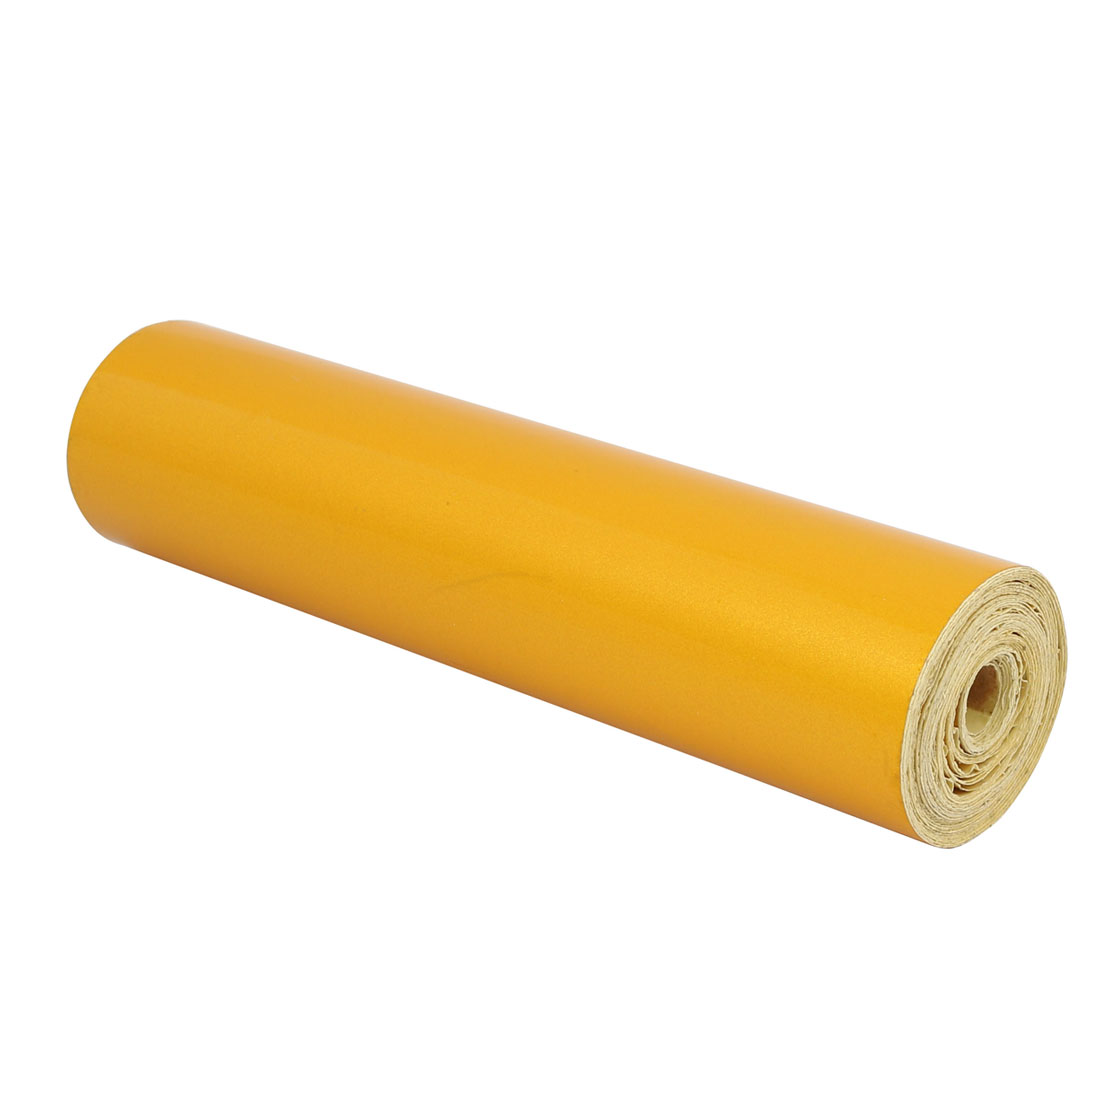 Single Sided Adhesive Reflective Warning Tape Yellow 6.2M Length 20cm Width